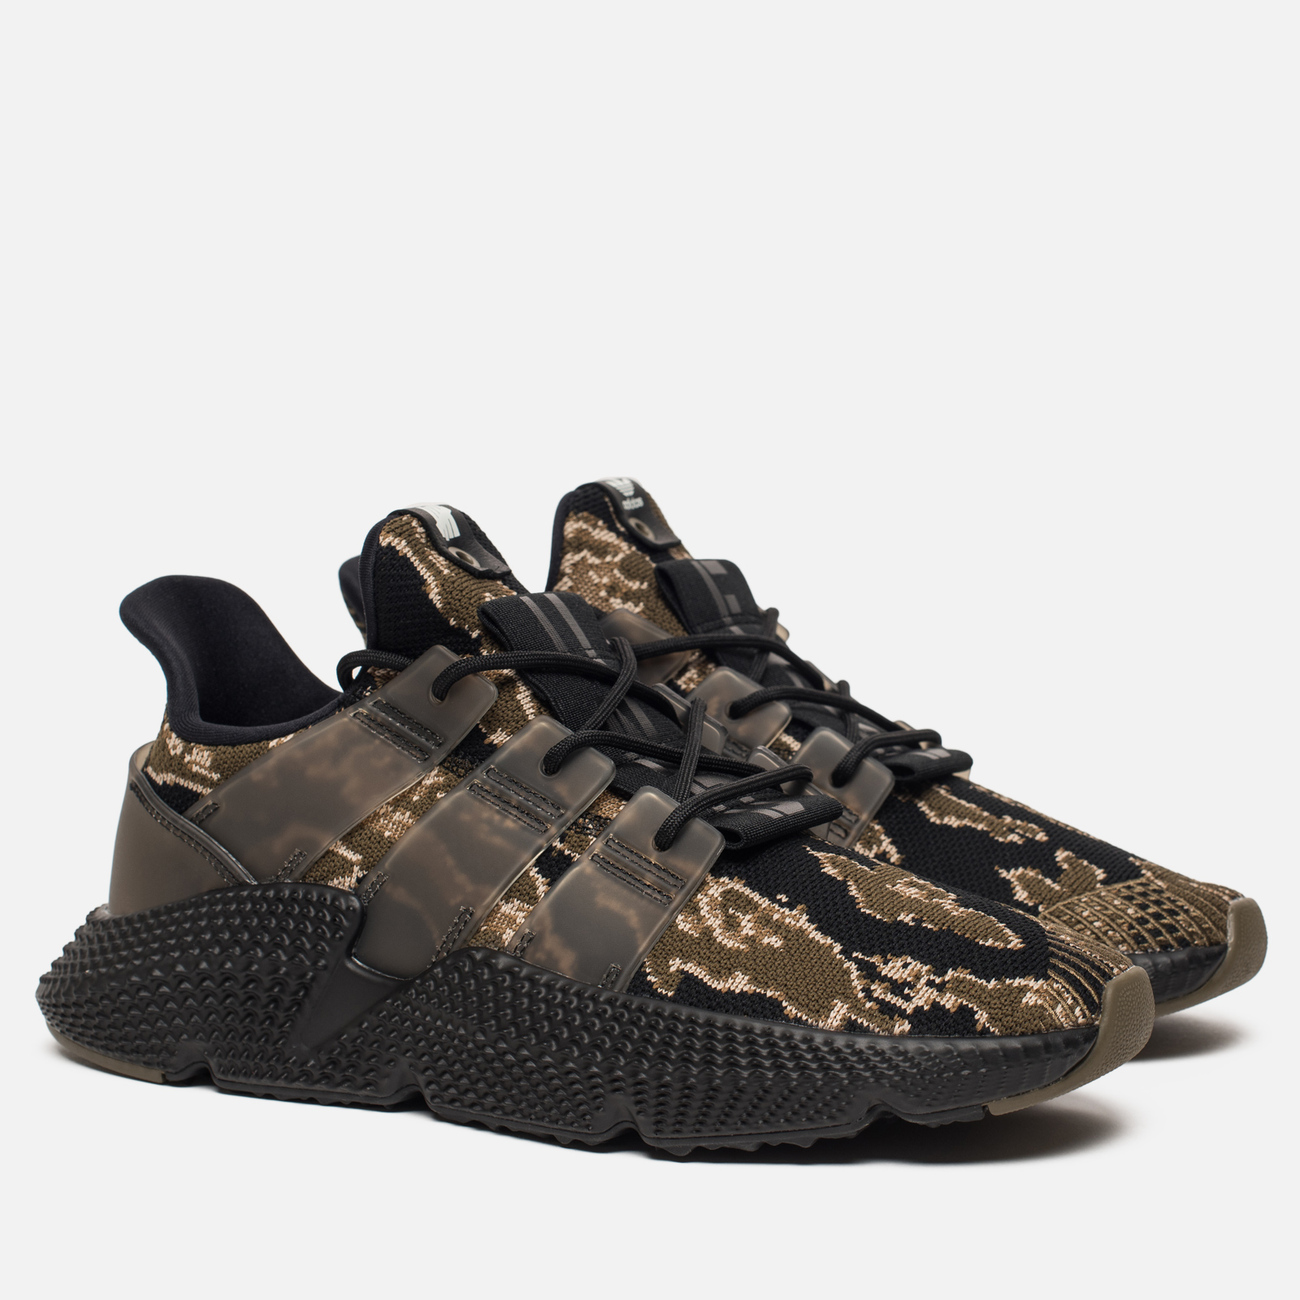 Кроссовки adidas Consortium x Undefeated Prophere Affiliates Black/Camo